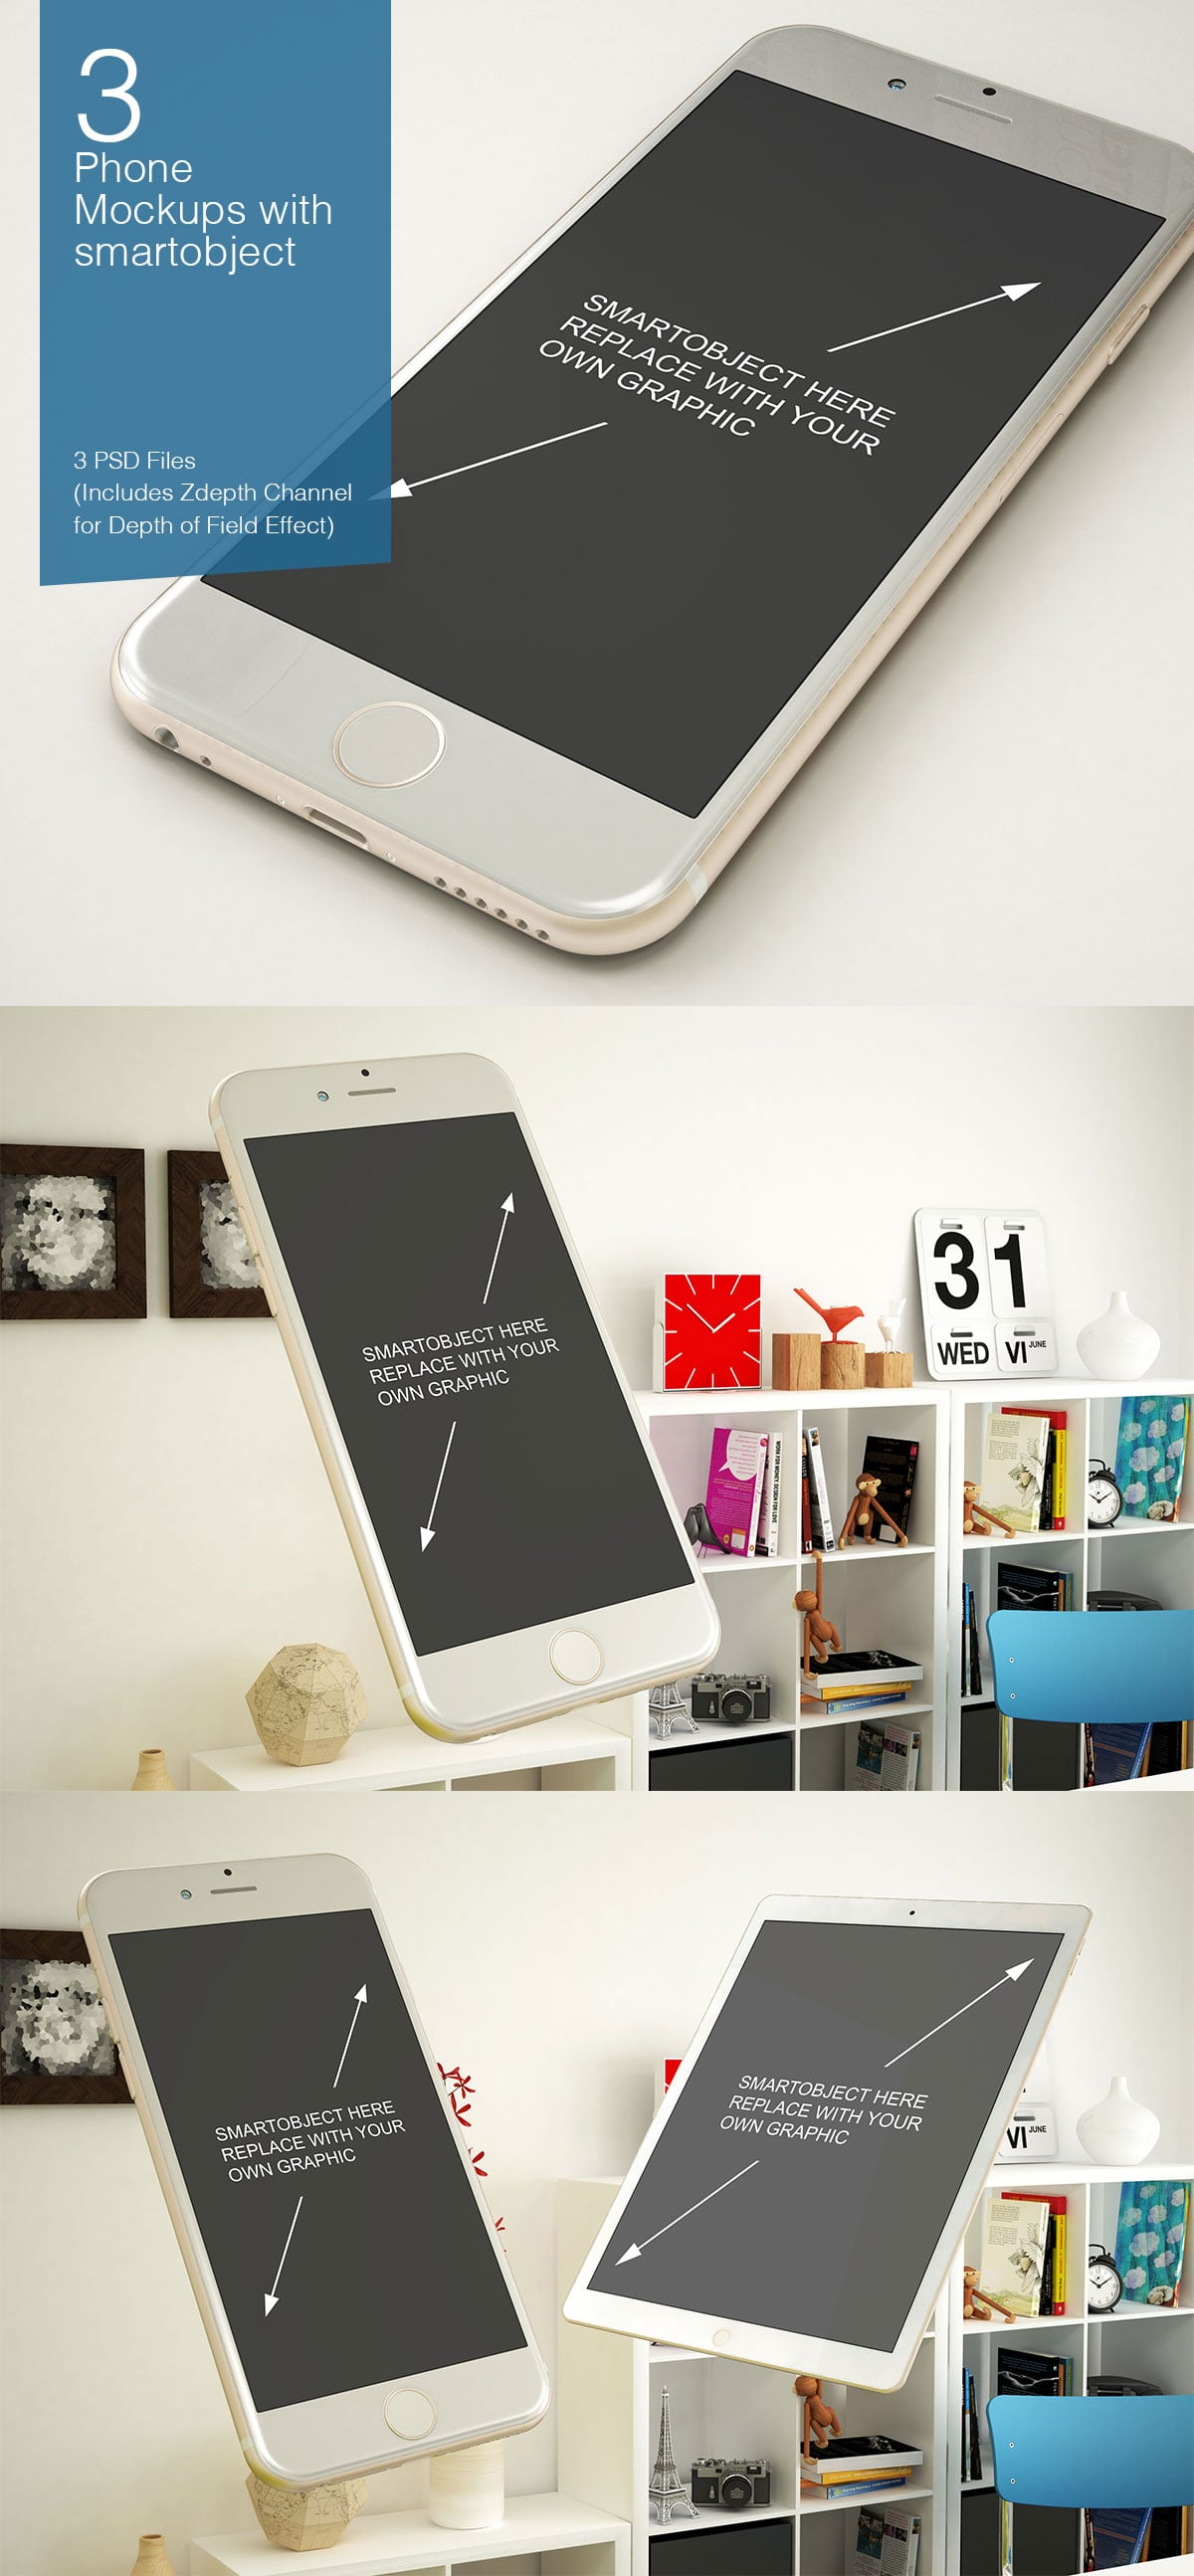 84 PSD Mockups for Apple Devices and Books